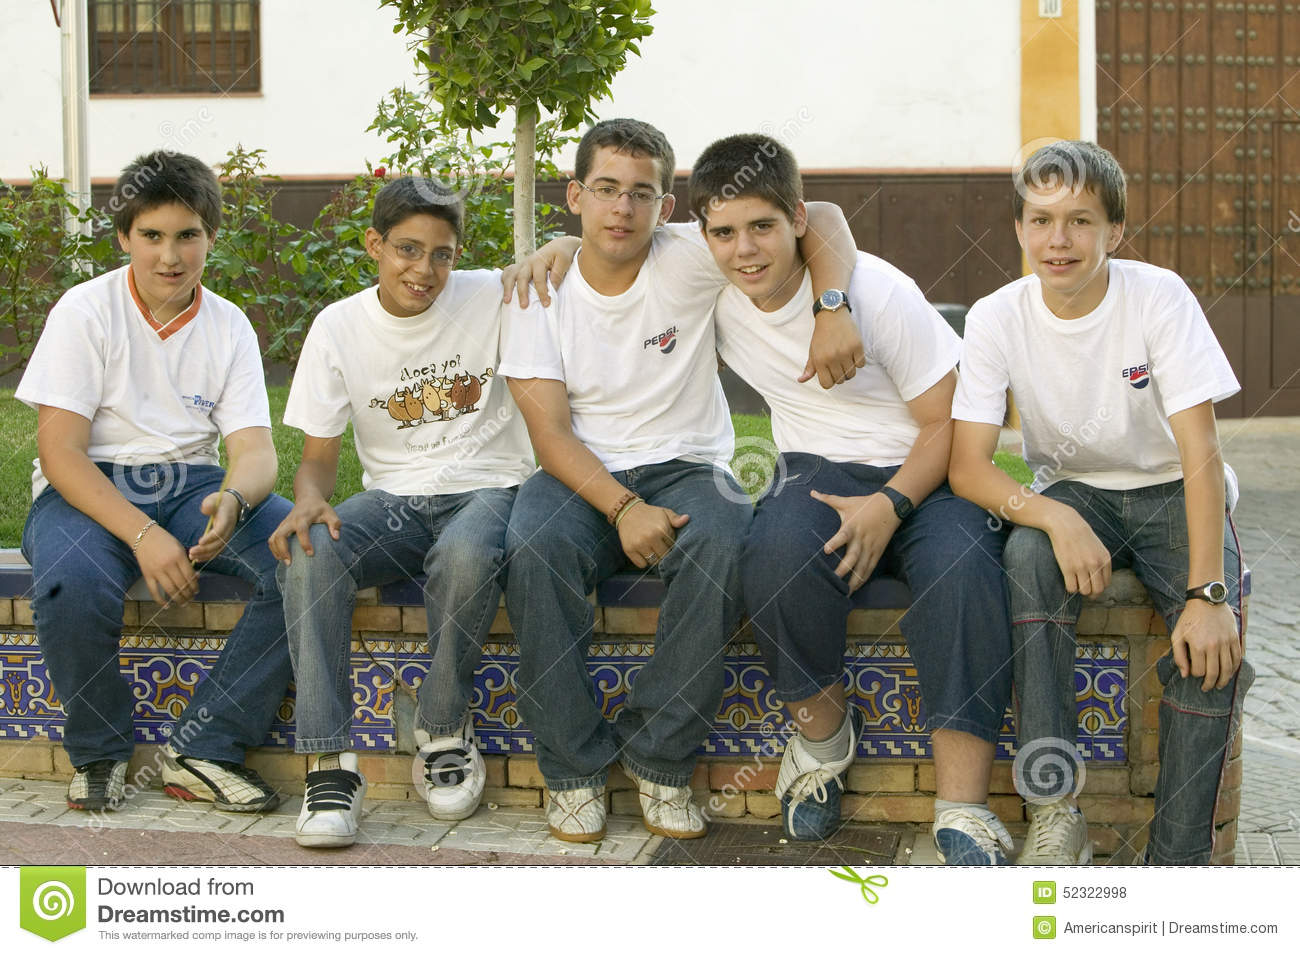 Group Of Smiling Boys In Village Of Southern Spain Off Highway A49 West Of Sevilla Editorial Stock Photo Image Of Casual Blue 52322998